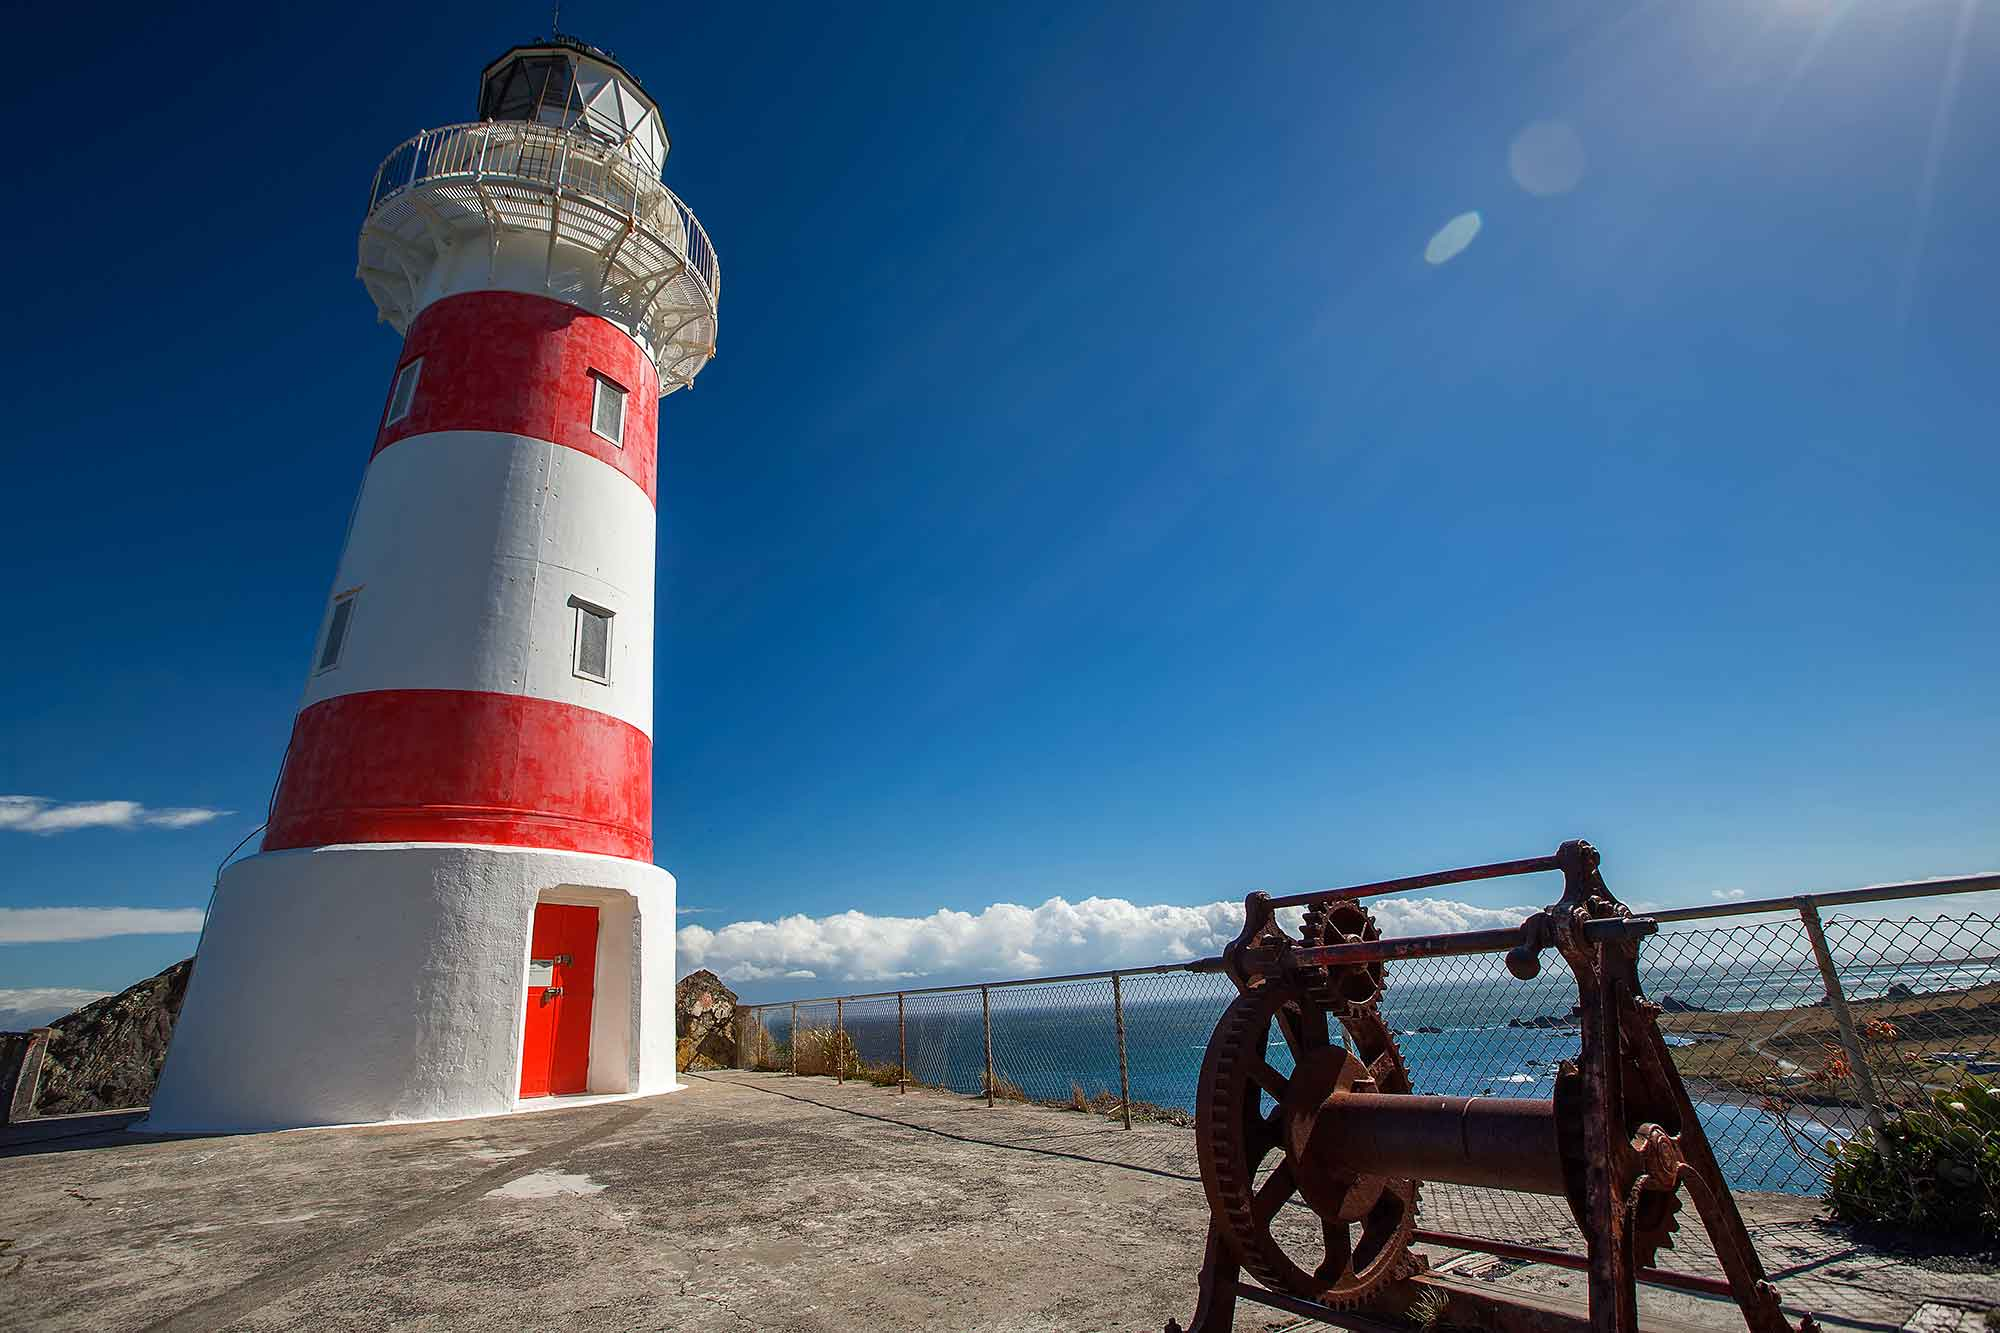 The lighthouse on Cape Palliser, New Zealand. © Ulli Maier & Nisa Maier